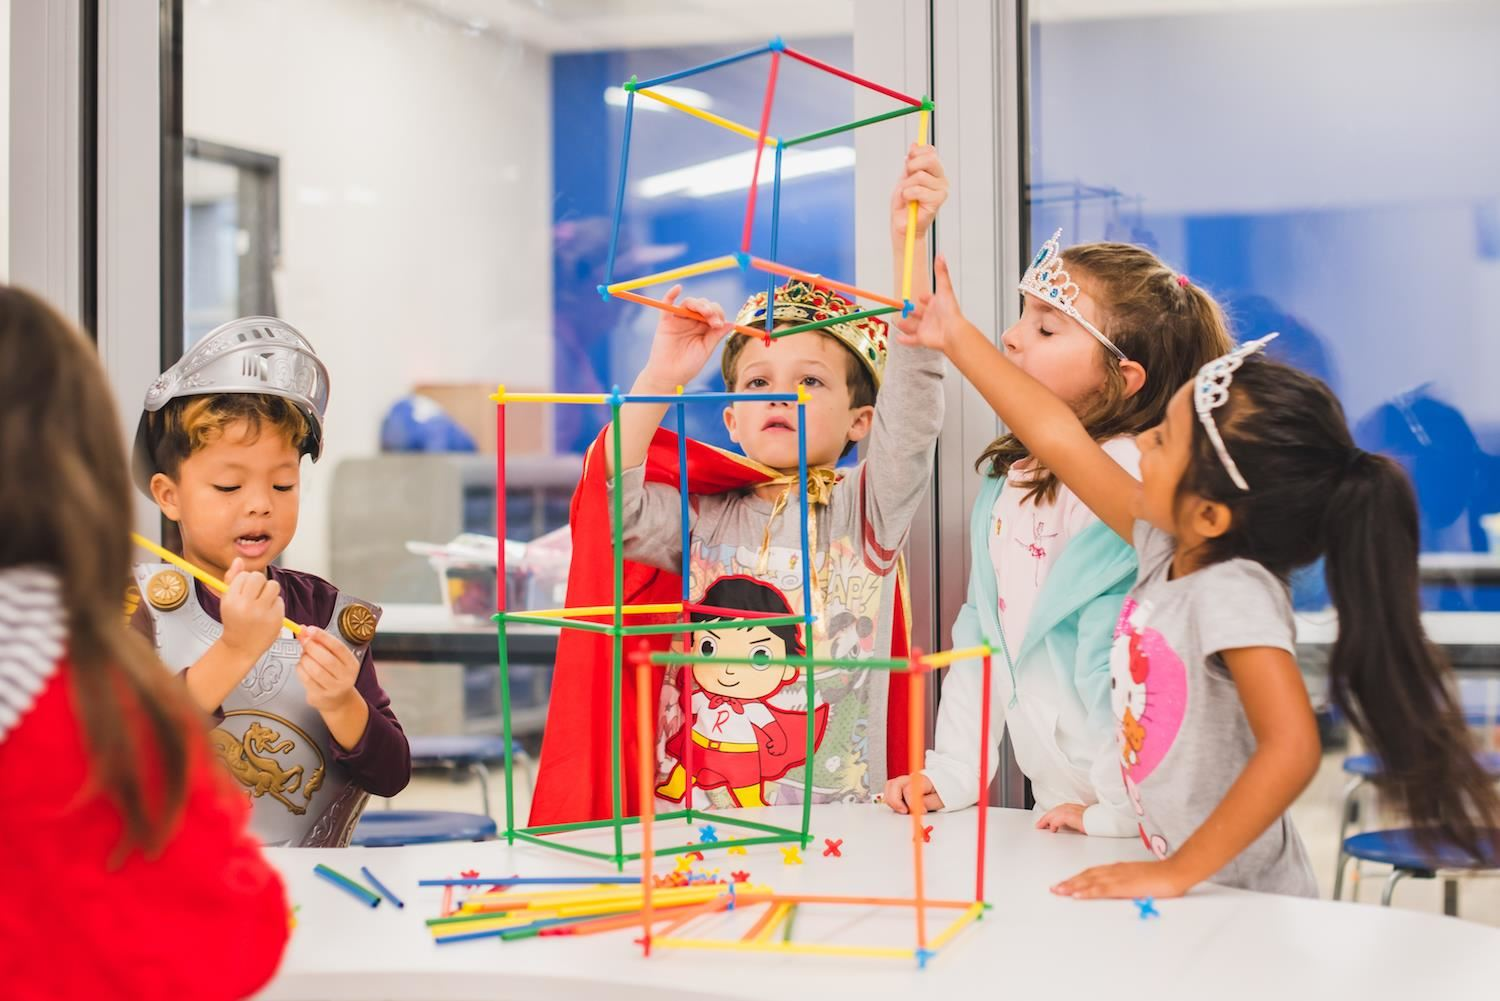 Students work together to build structure from straws